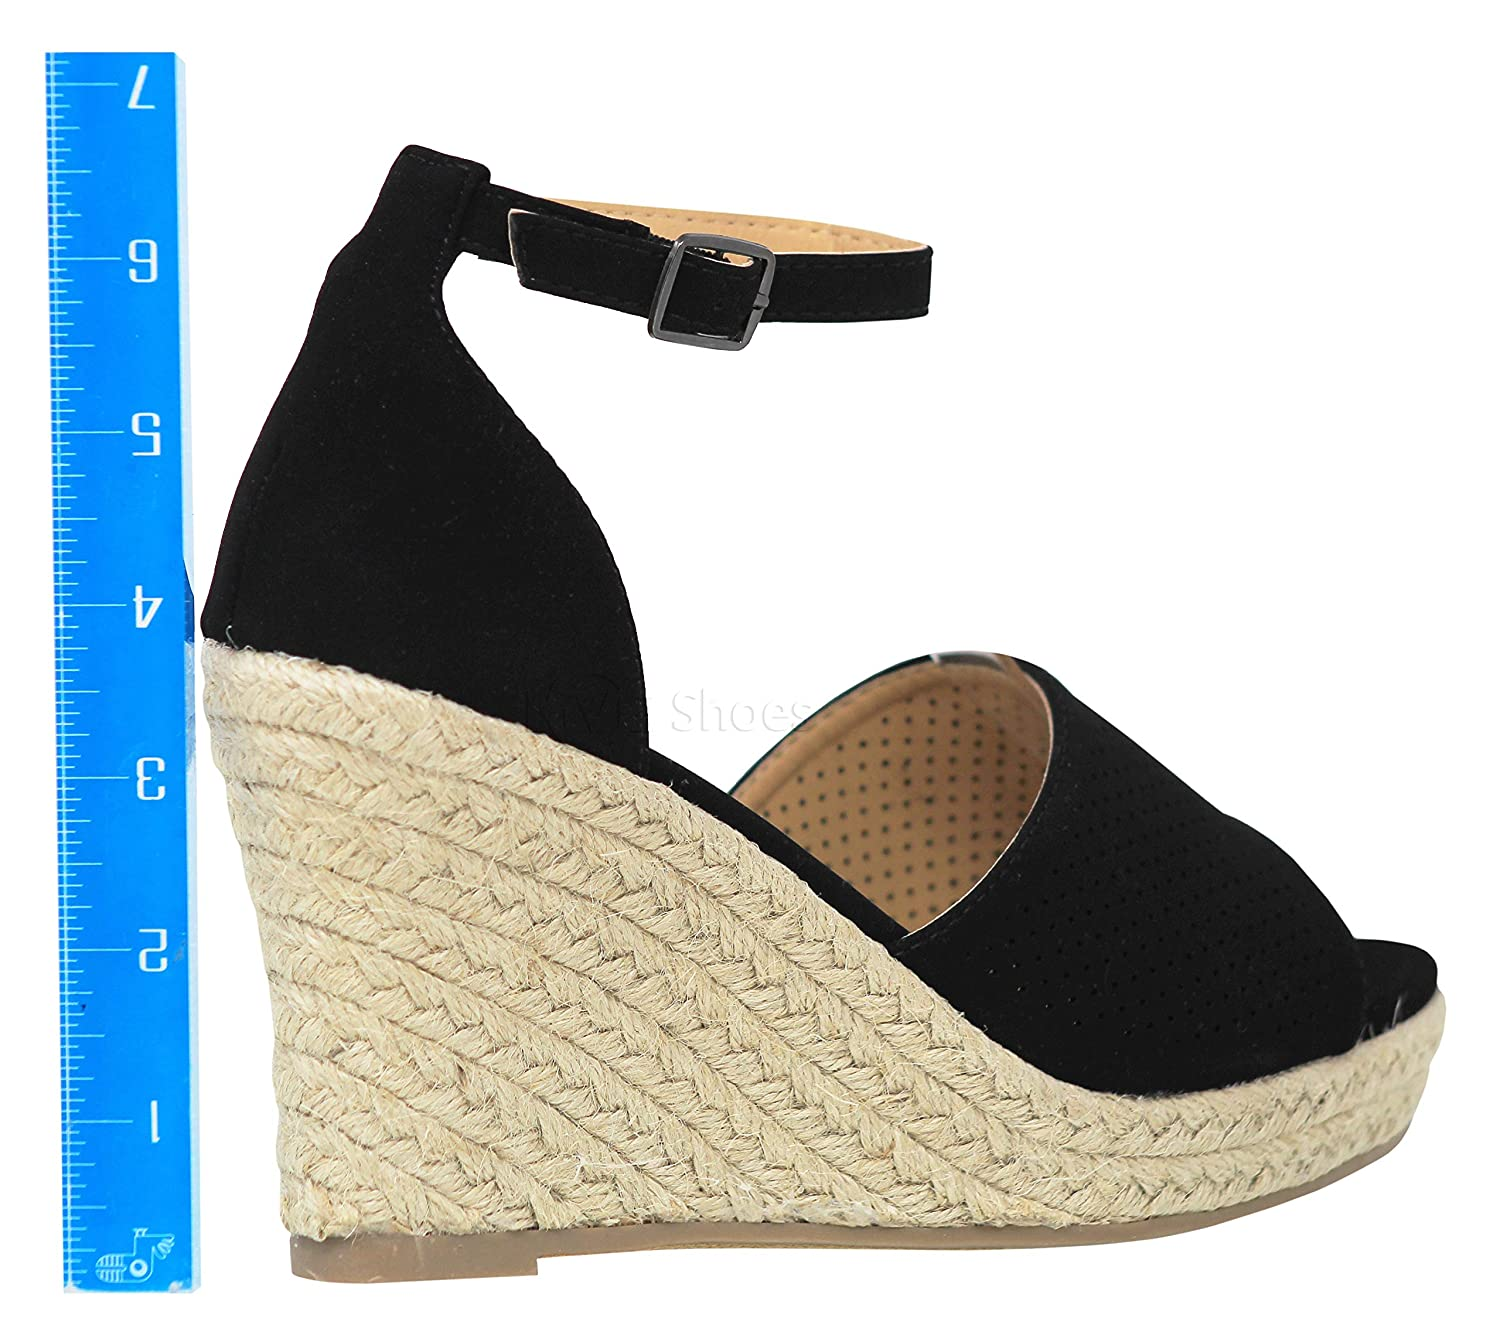 0aff20d4bc7 Amazon.com  MVE Shoes Womens Comfortable Open Toe Adjustable Ankle Strap  Wedge  Shoes